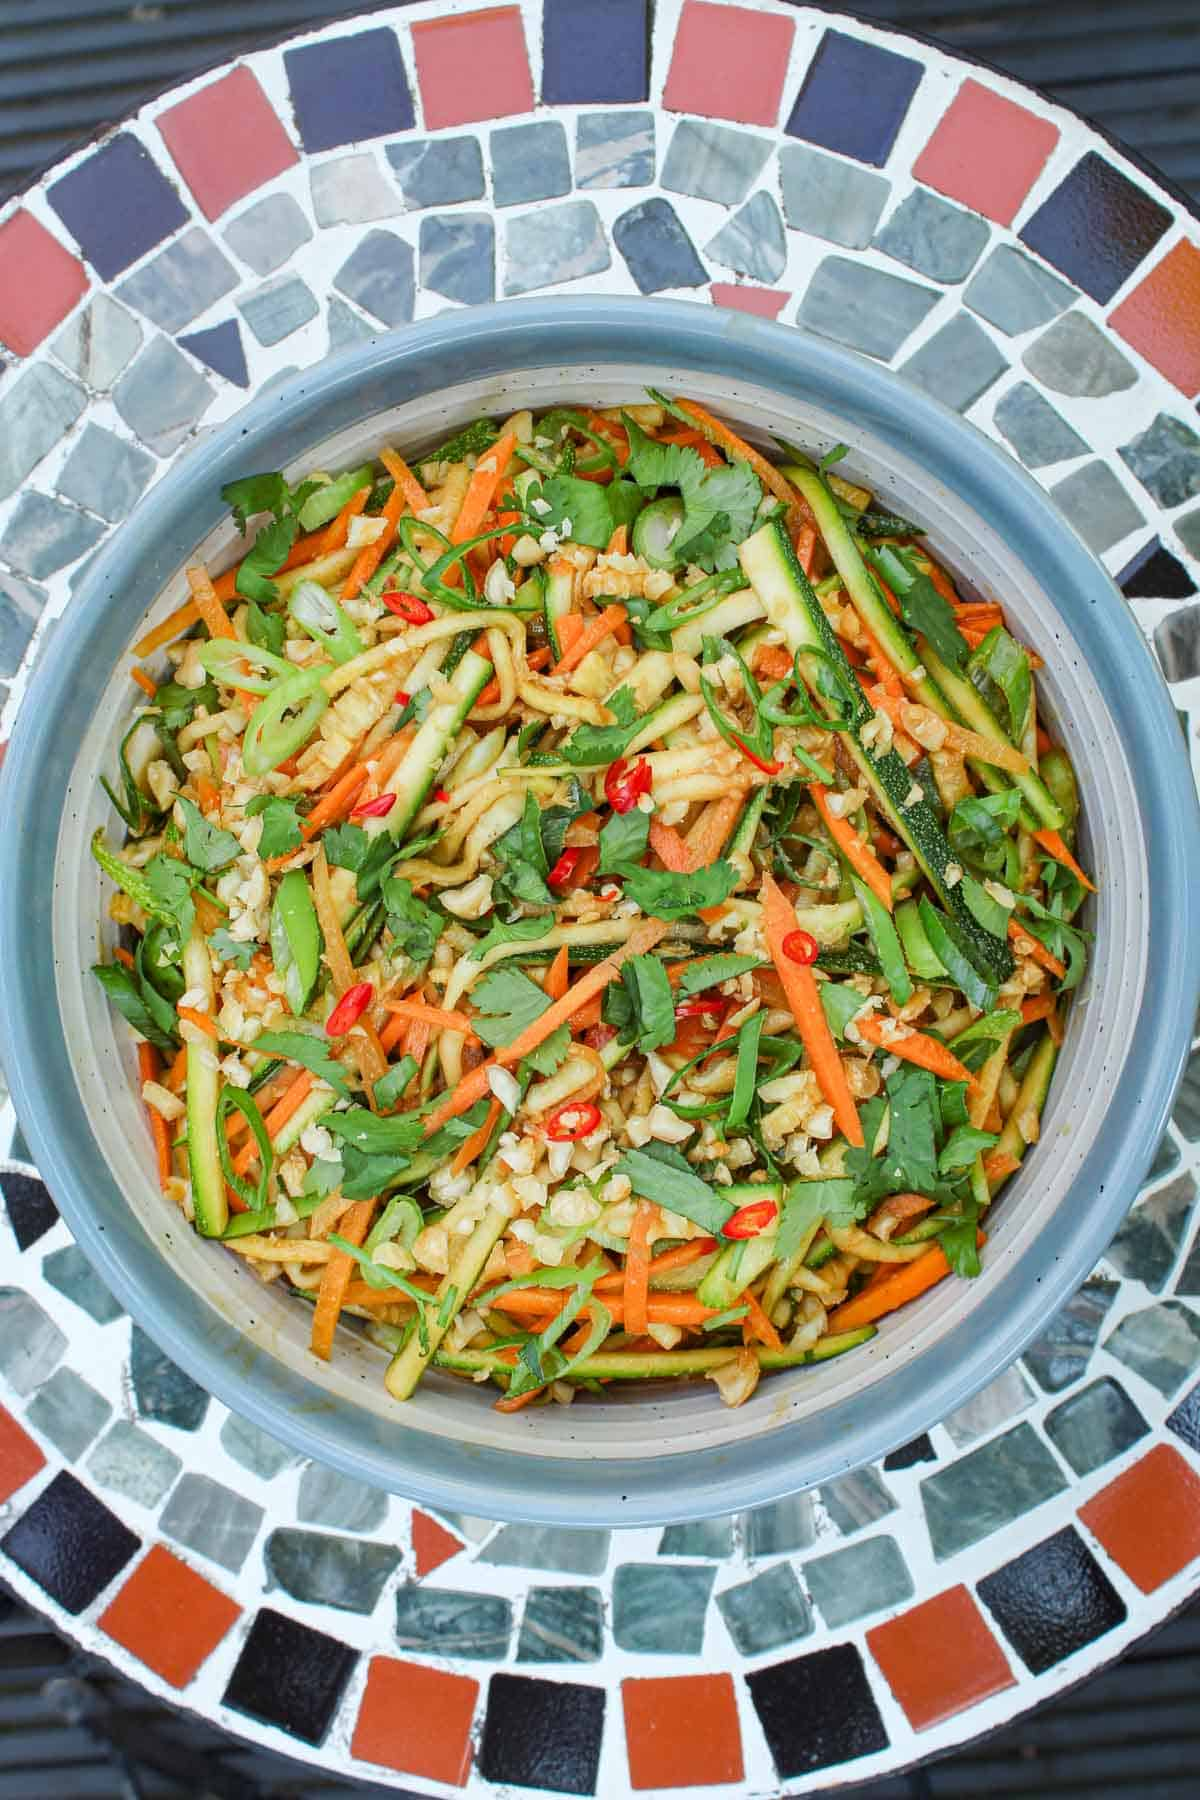 Zucchini Salad on Outside Table in Summer